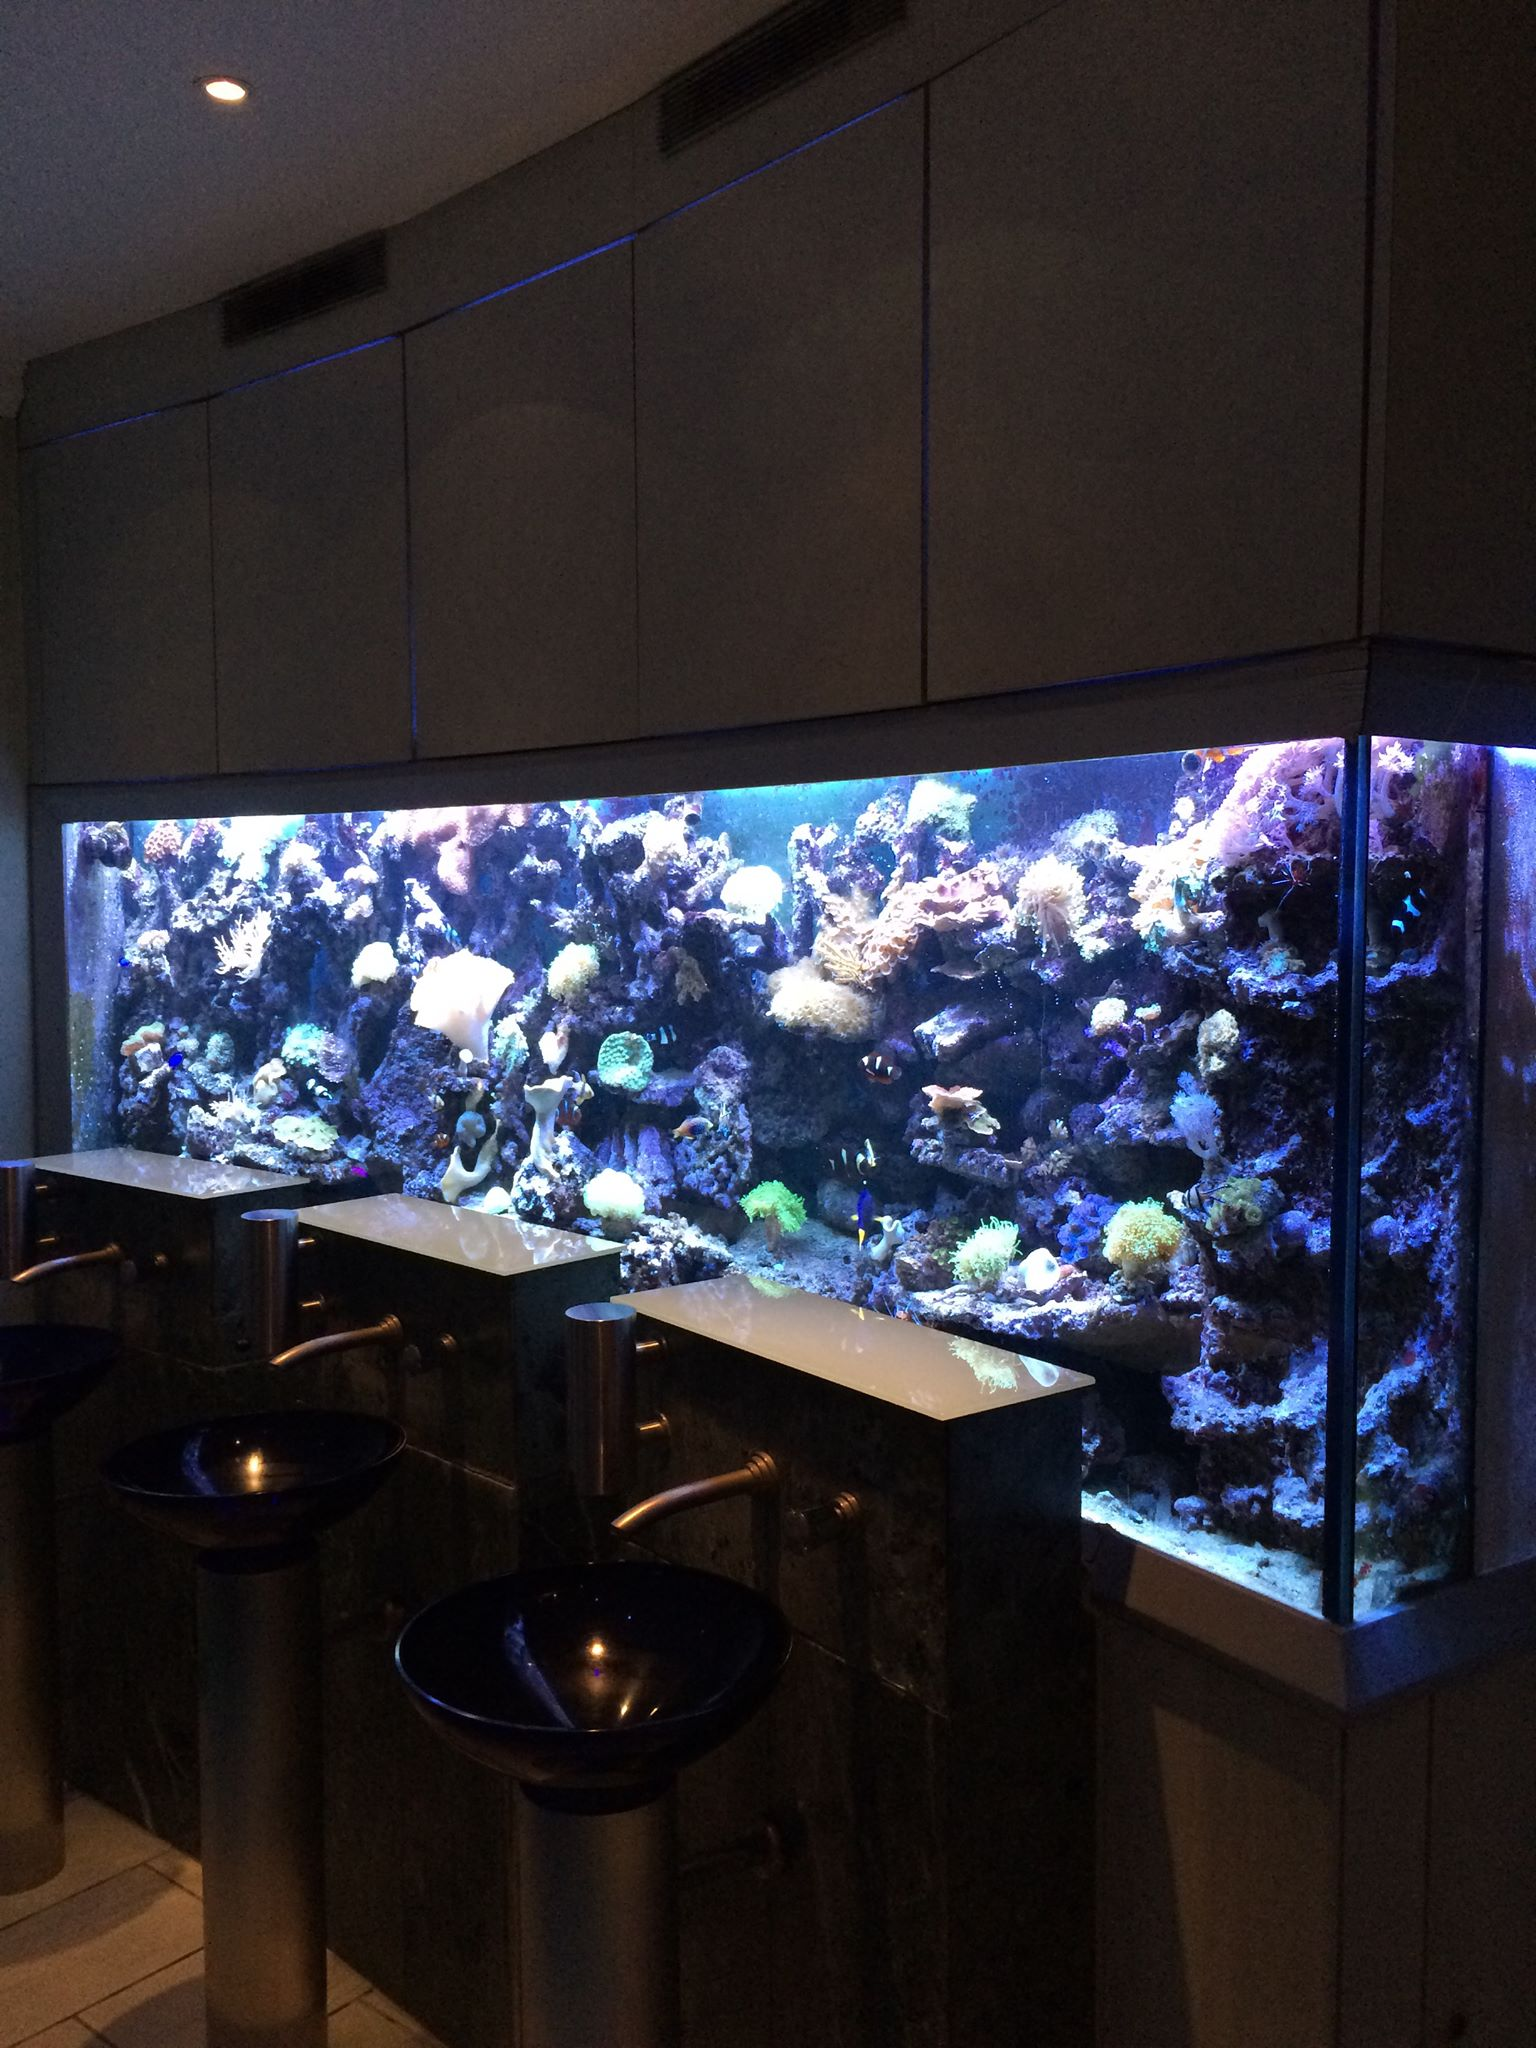 3 meter aquarium aqua tropica. Black Bedroom Furniture Sets. Home Design Ideas